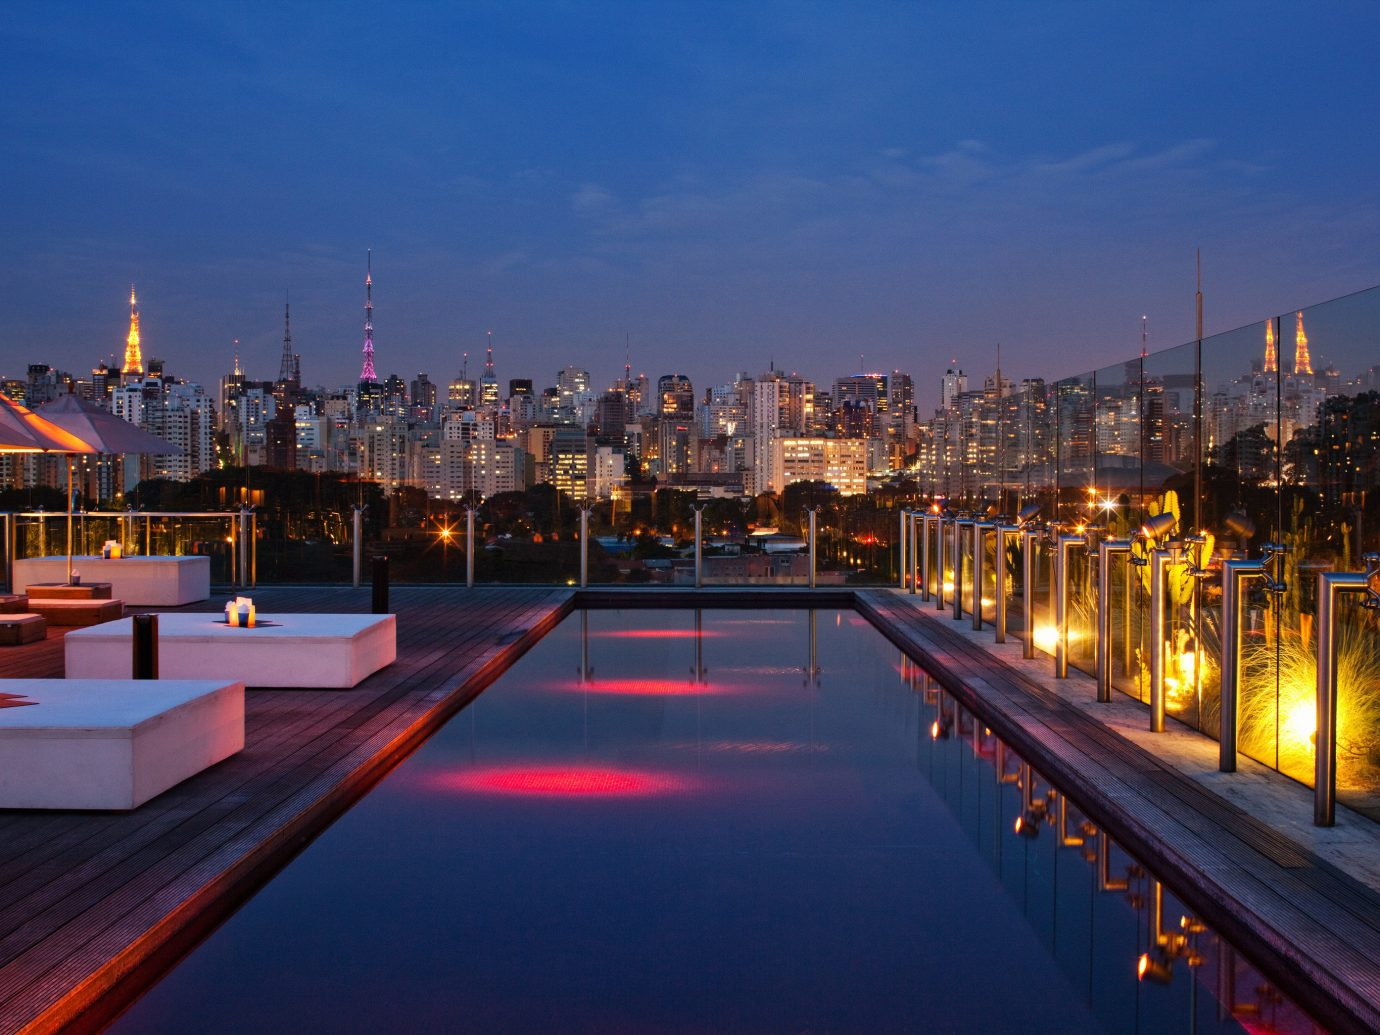 Beaches Brazil Trip Ideas sky cityscape reflection metropolitan area City waterway outdoor landmark skyline urban area water dusk metropolis night evening Architecture Downtown factory residential area lighting skyscraper horizon tourist attraction real estate Sunset long building tower block condominium line